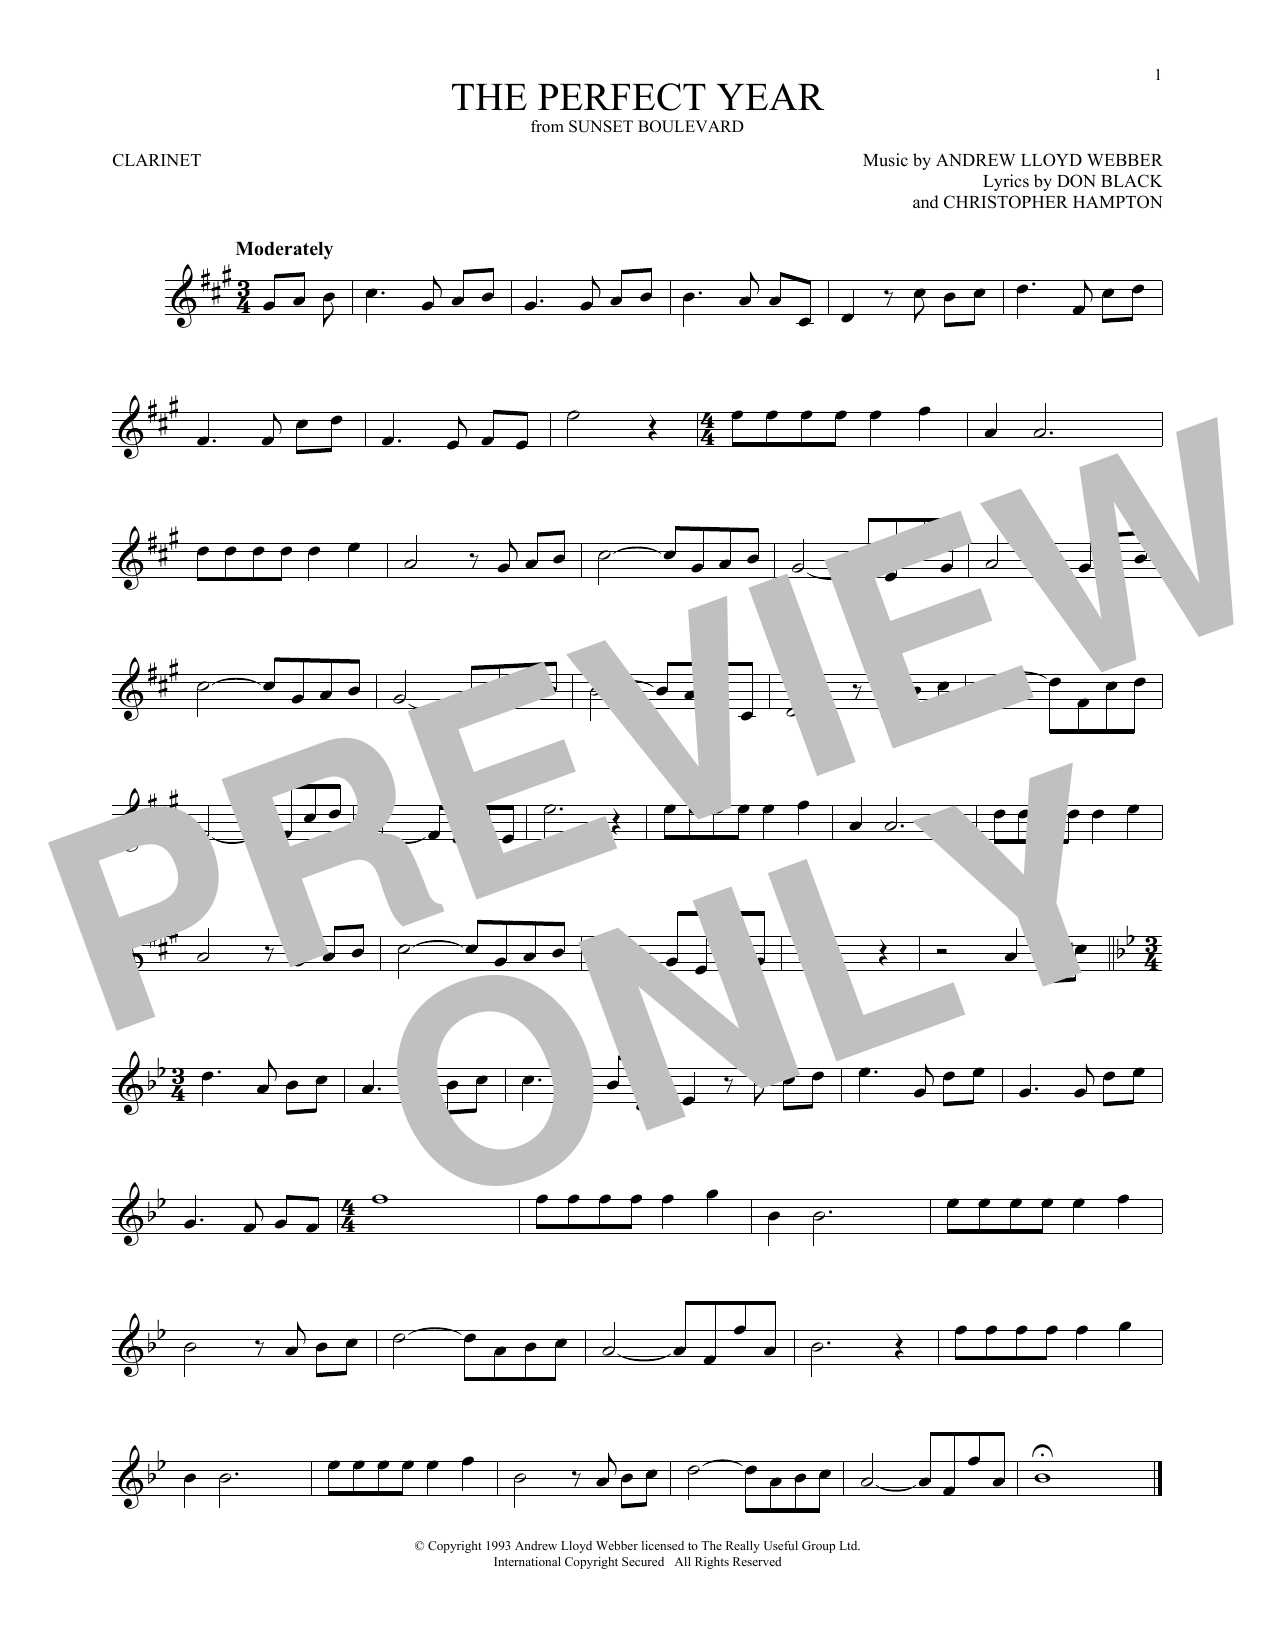 The Perfect Year (from Sunset Boulevard) (Clarinet Solo)